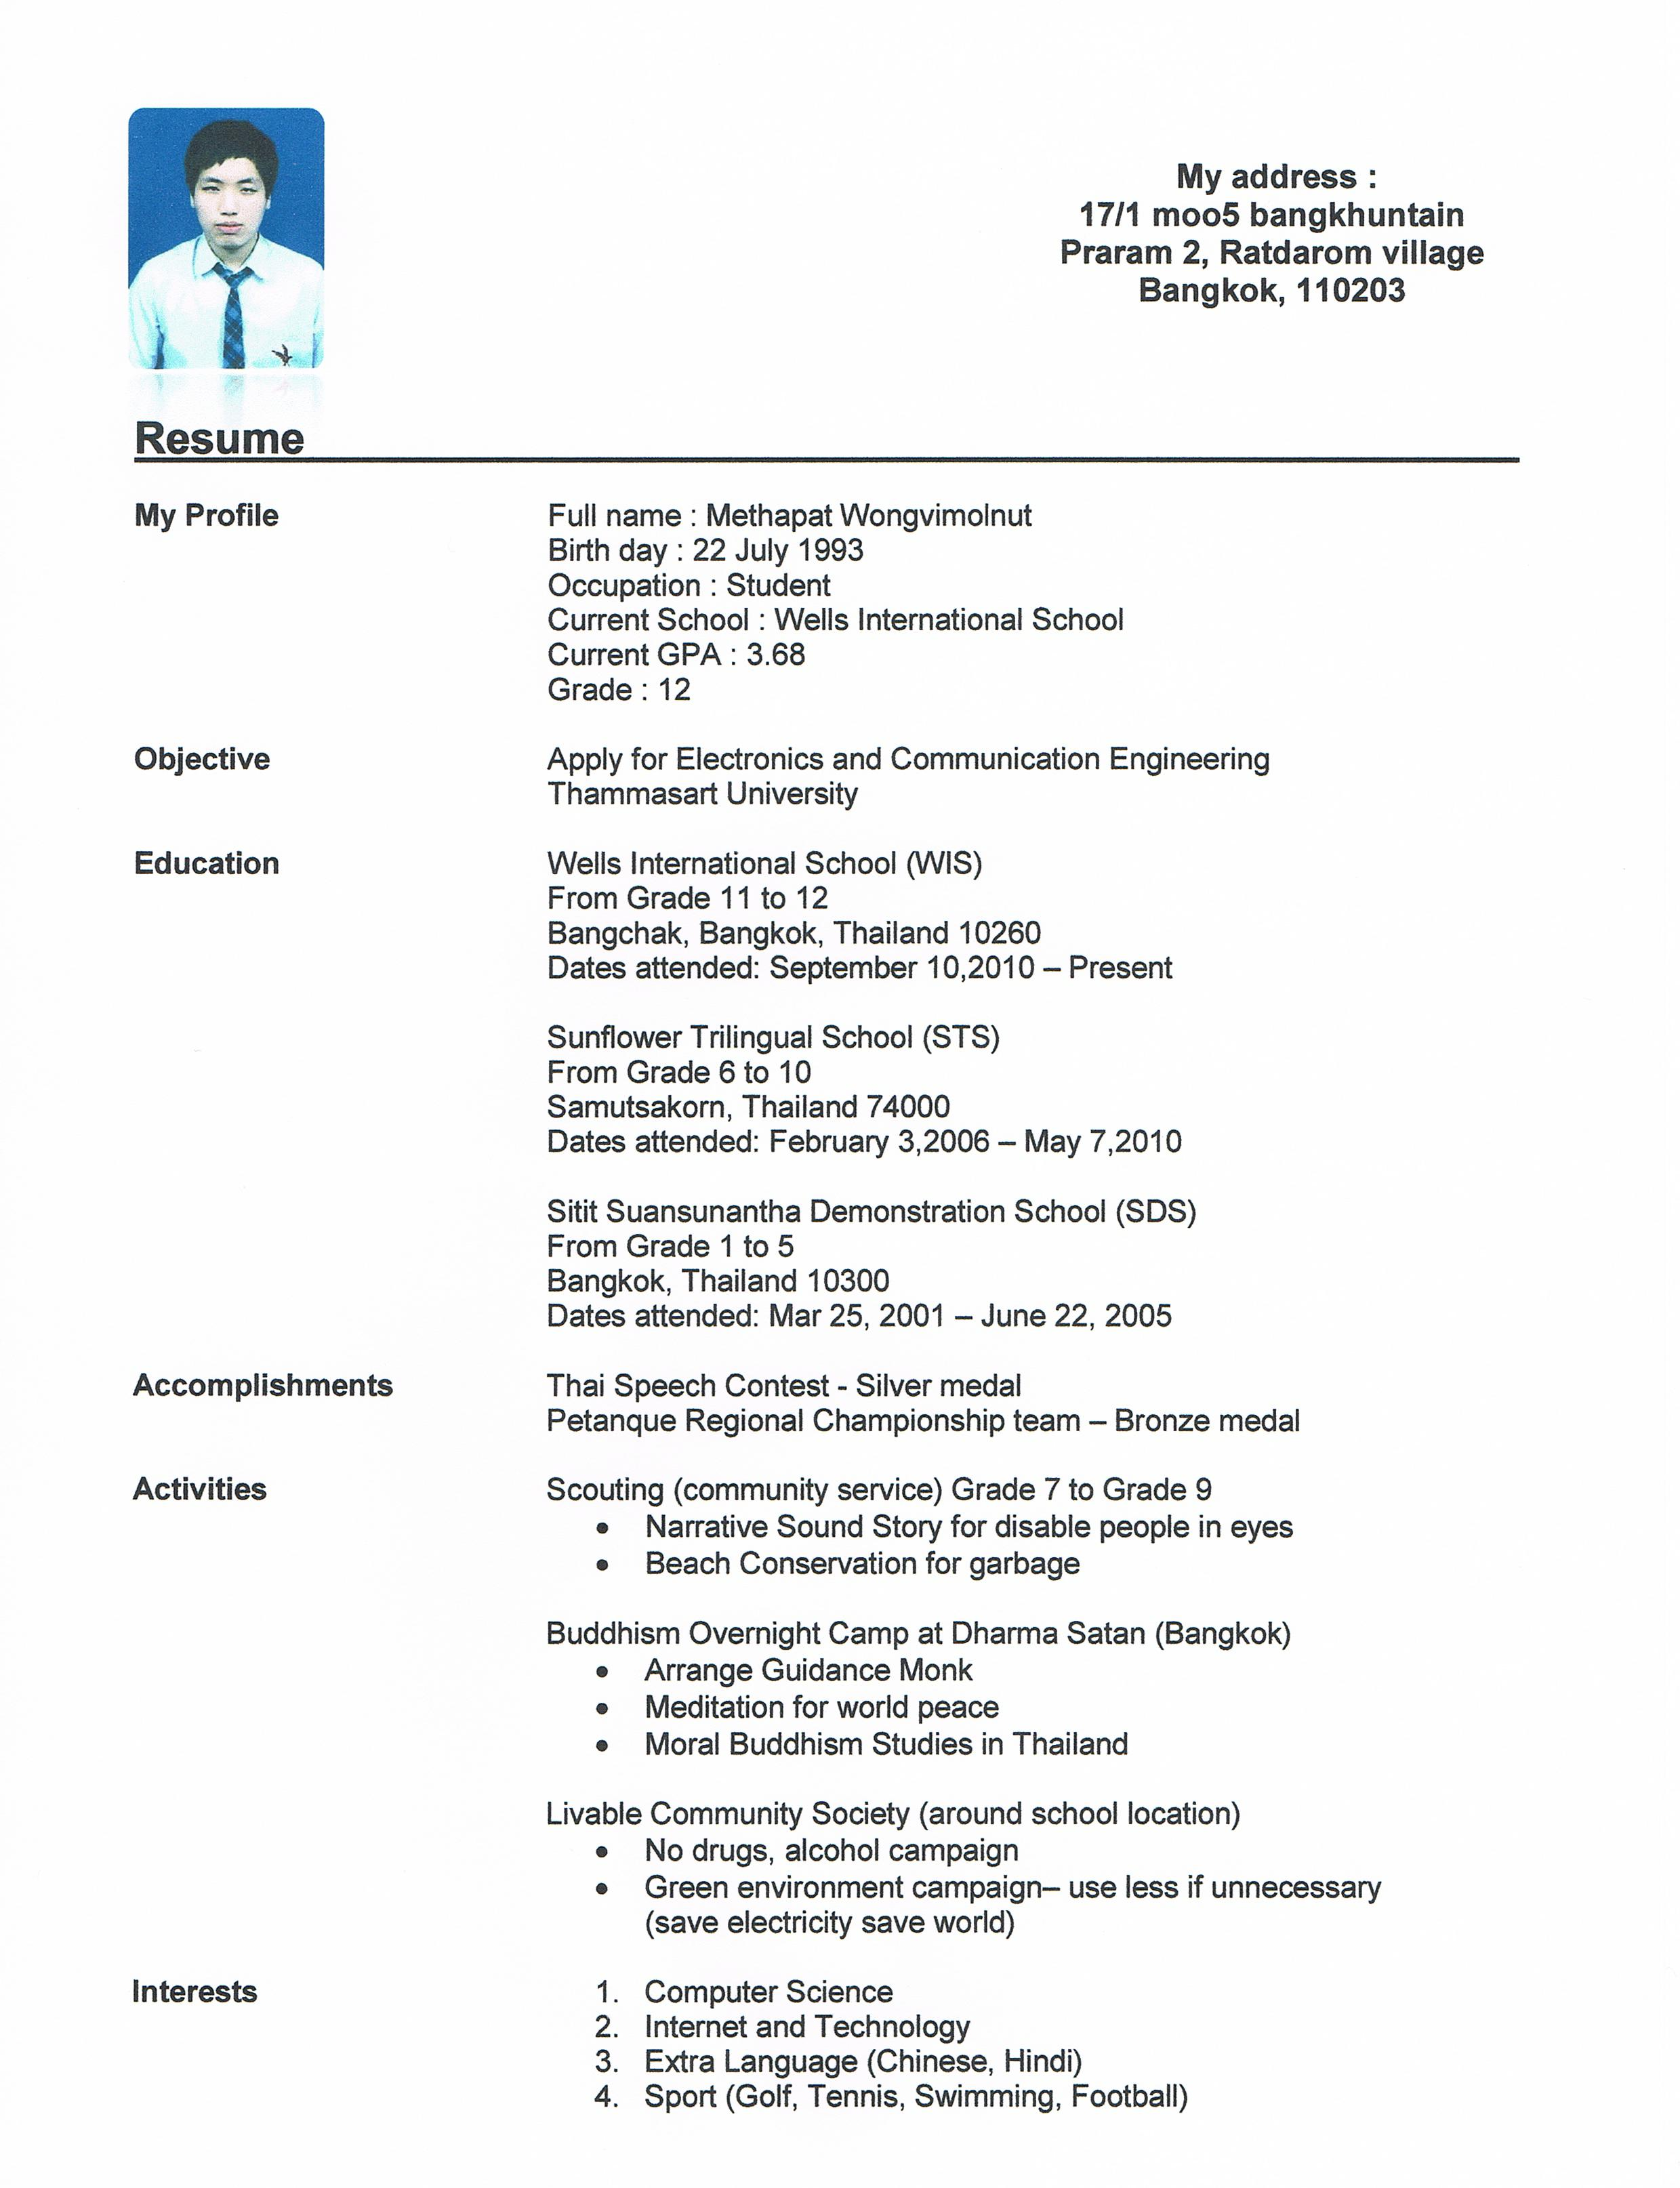 Resume High School Student essayscope.Com